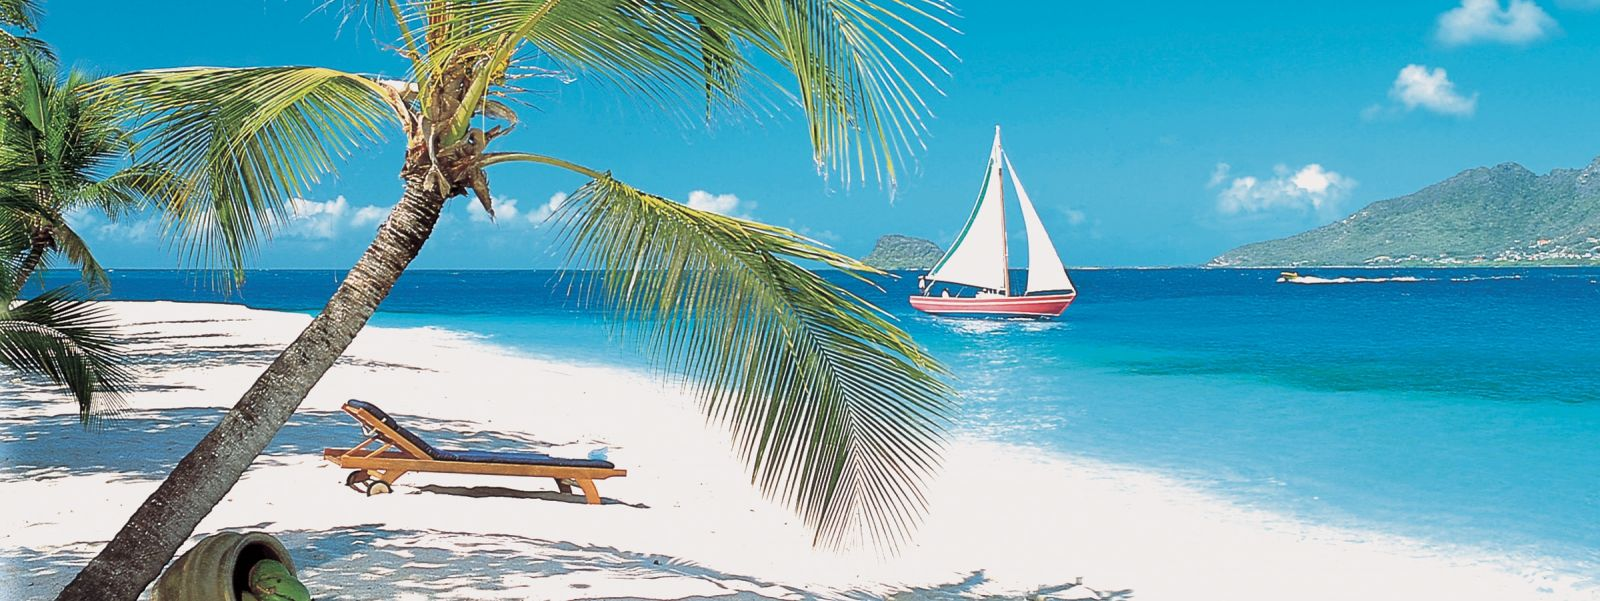 st-vincent-and-the-grenadines377